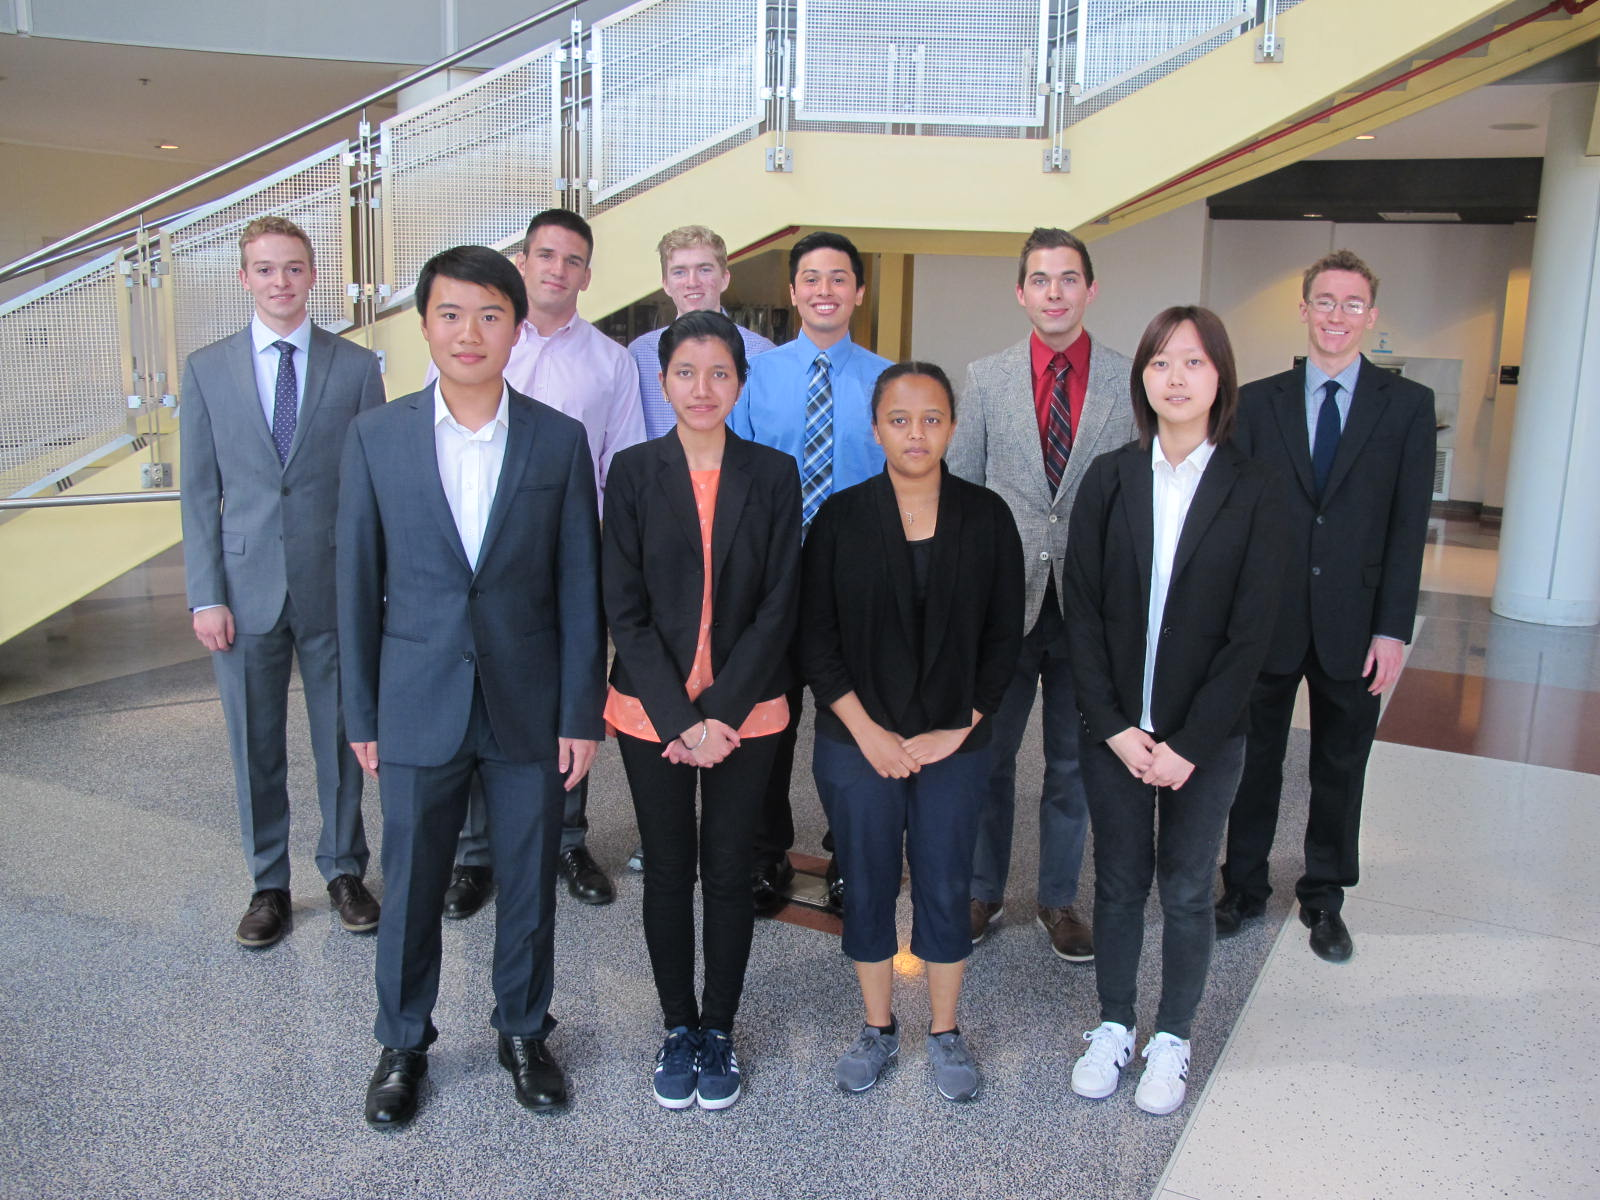 The ten students participating in the REU Program in Transportation Electrification at the University of Maryland, College Park.